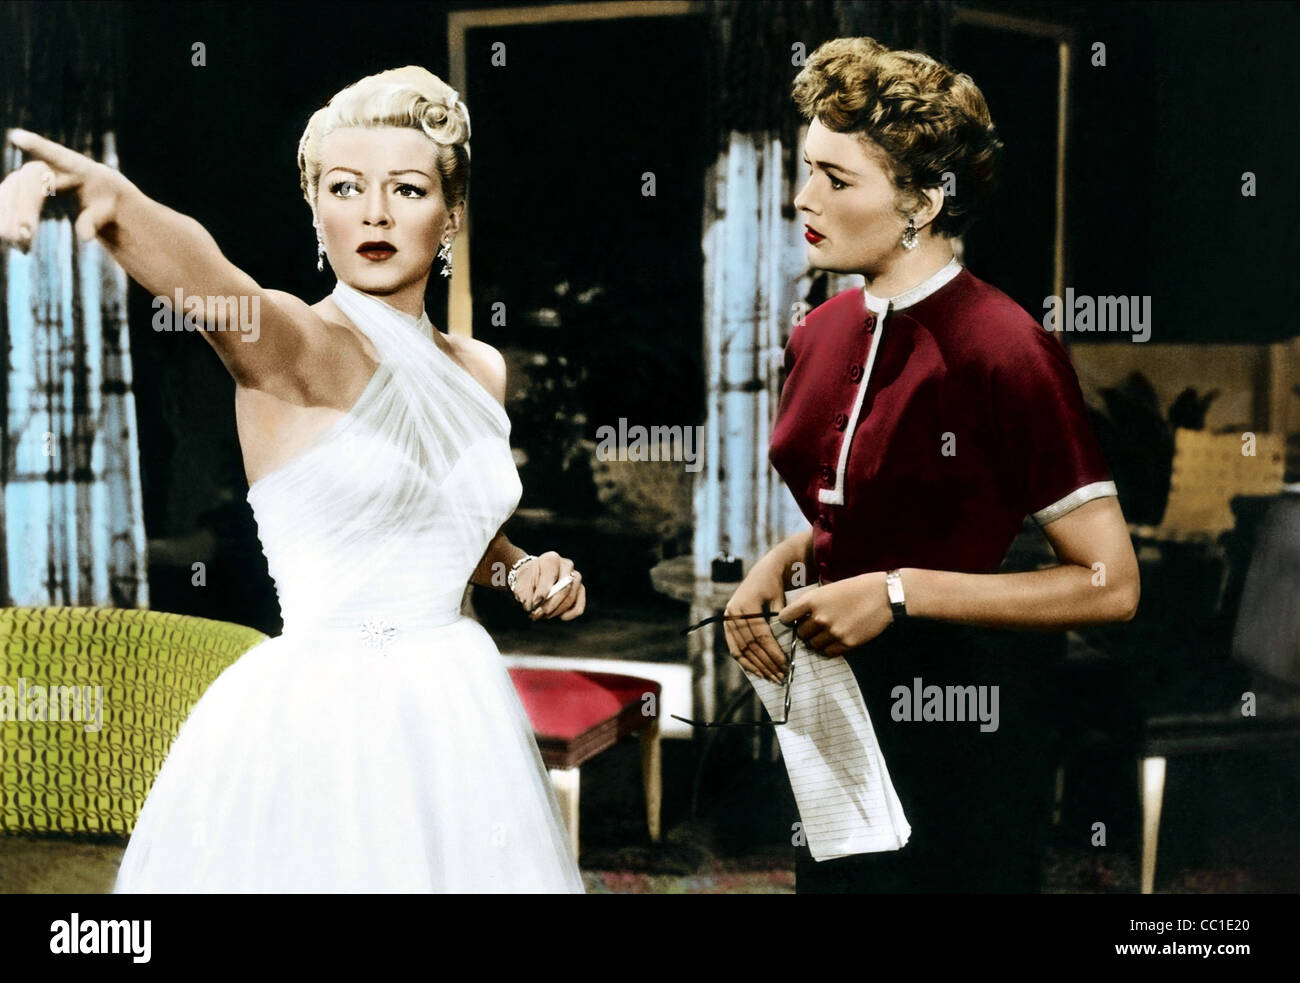 LANA TURNER & JEAN HAGEN LATIN LOVERS (1953) - Stock Image